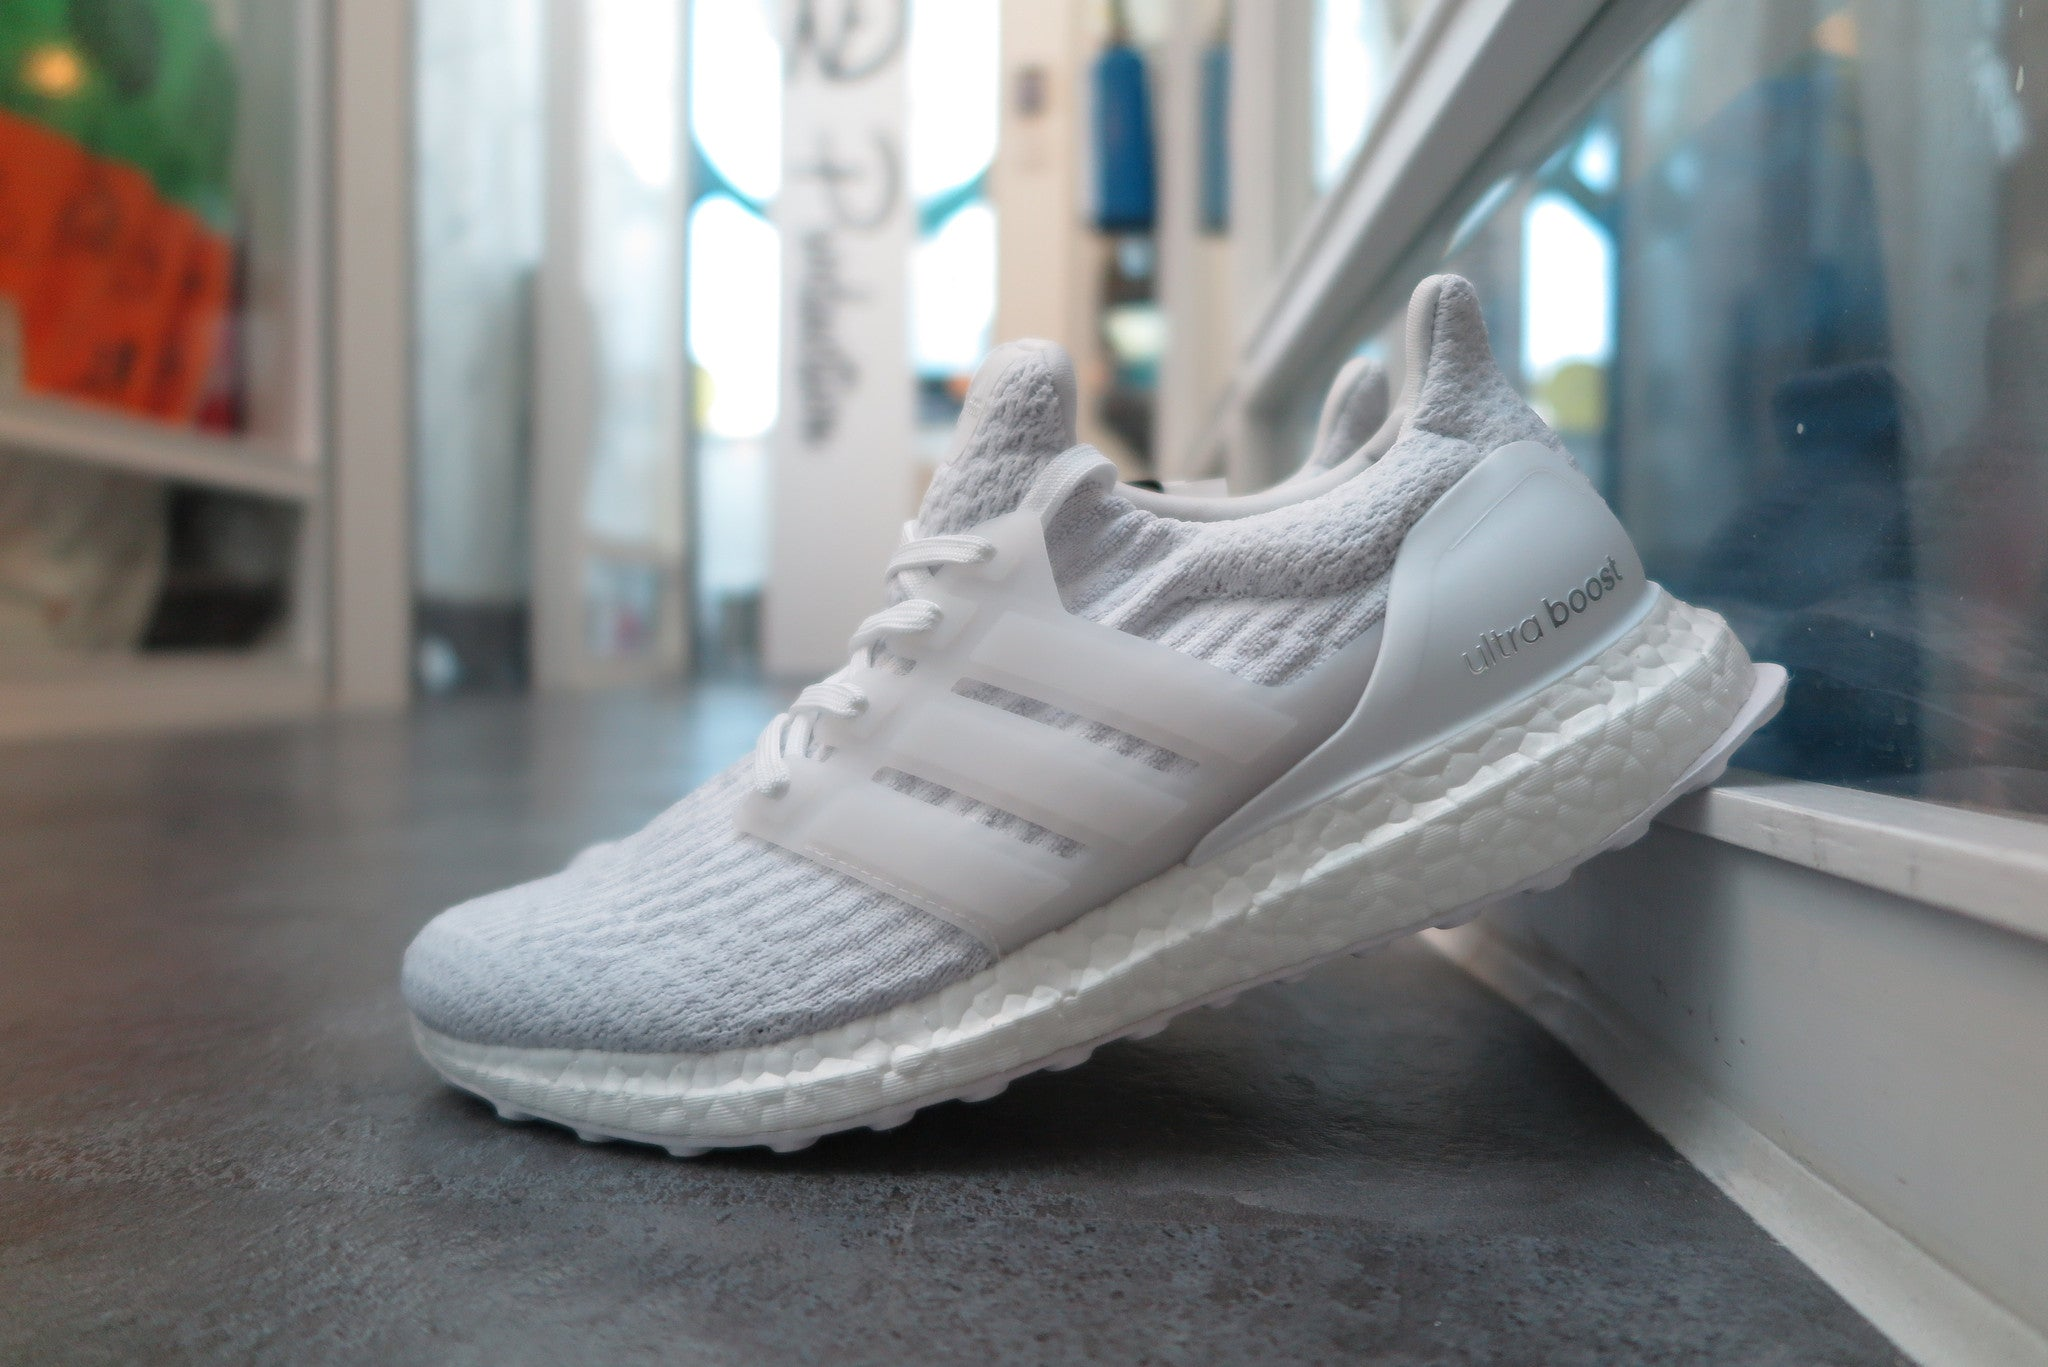 c0e807bb6 ... italy adidas ultra boost 3.0 footwear white crystal white ba8841  sneakers navy 43d46 42be8 where to buy ...